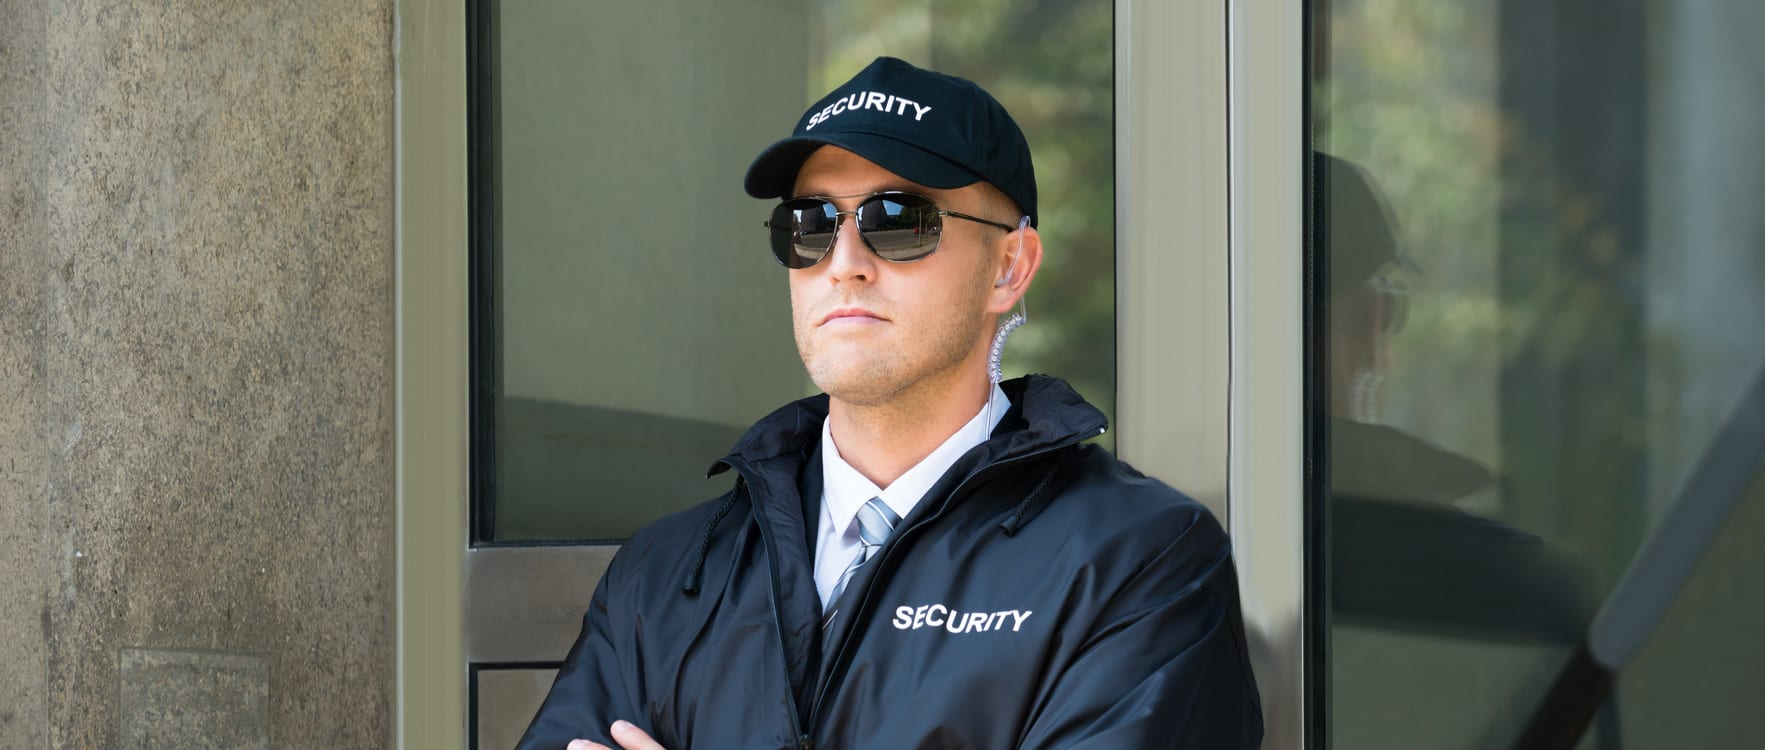 How to Become an Unarmed Security Guard - JobHero